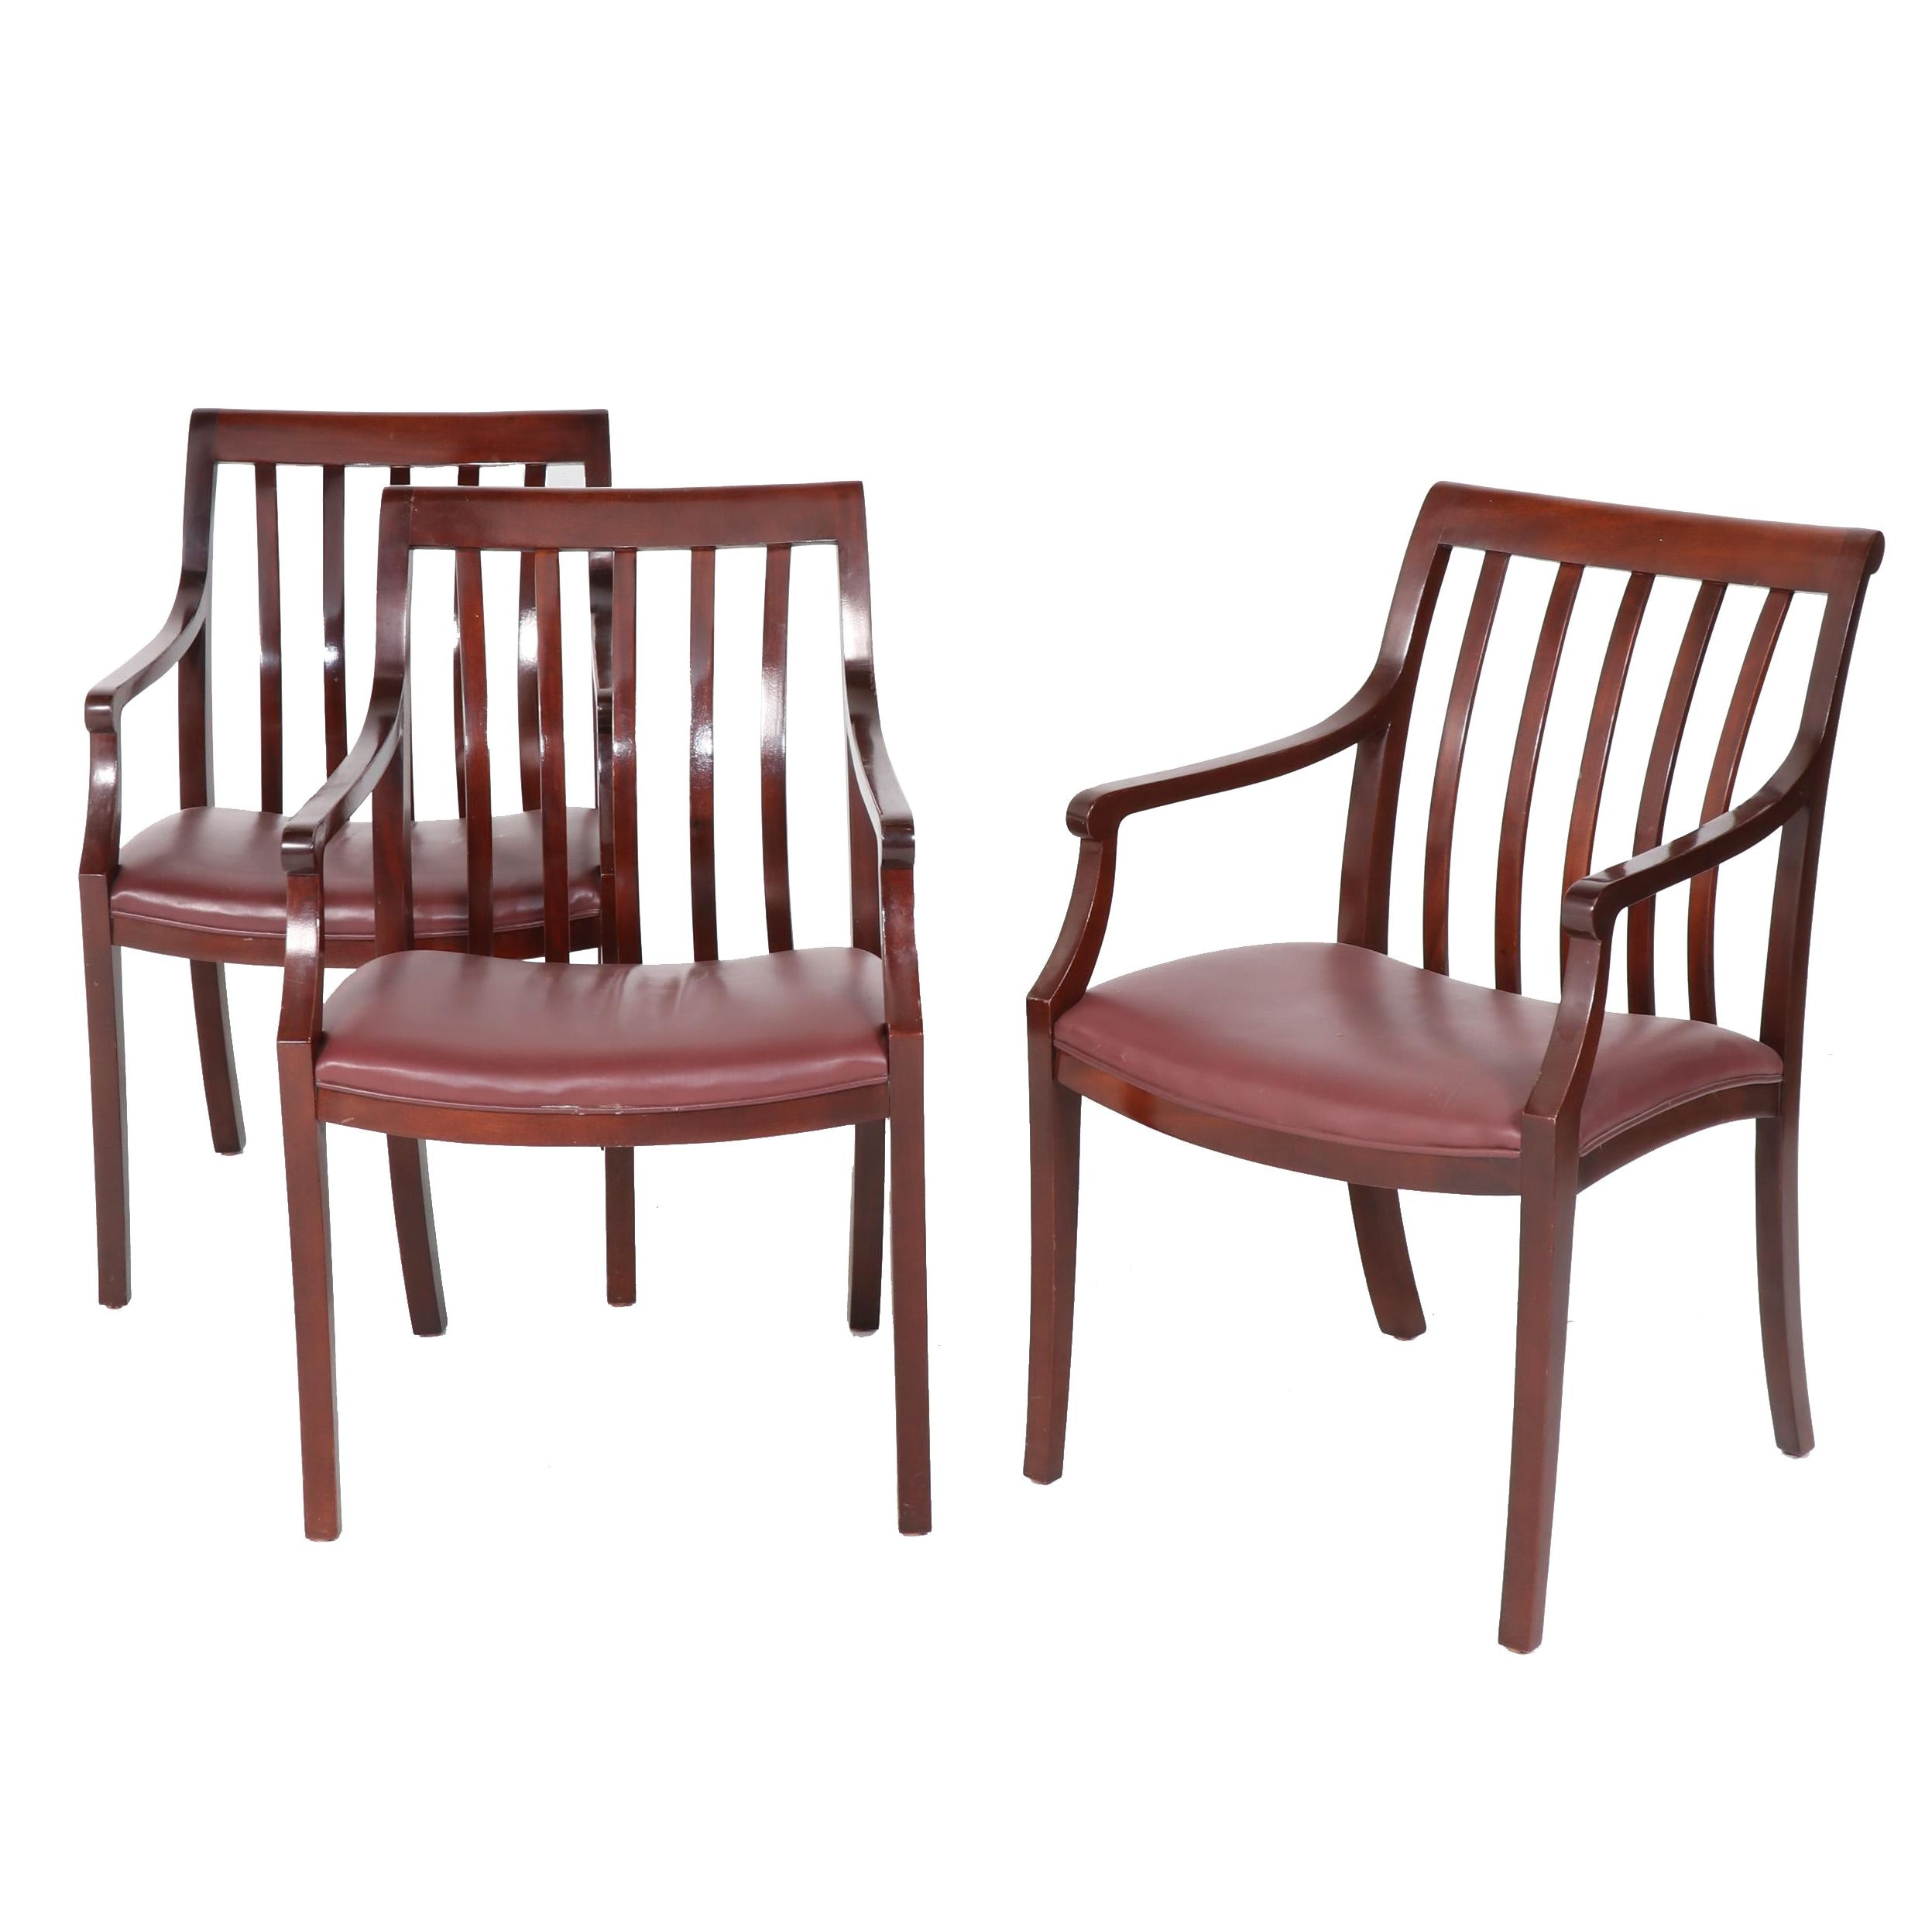 Hancock & More Wood and Leather Dining Arm Chairs